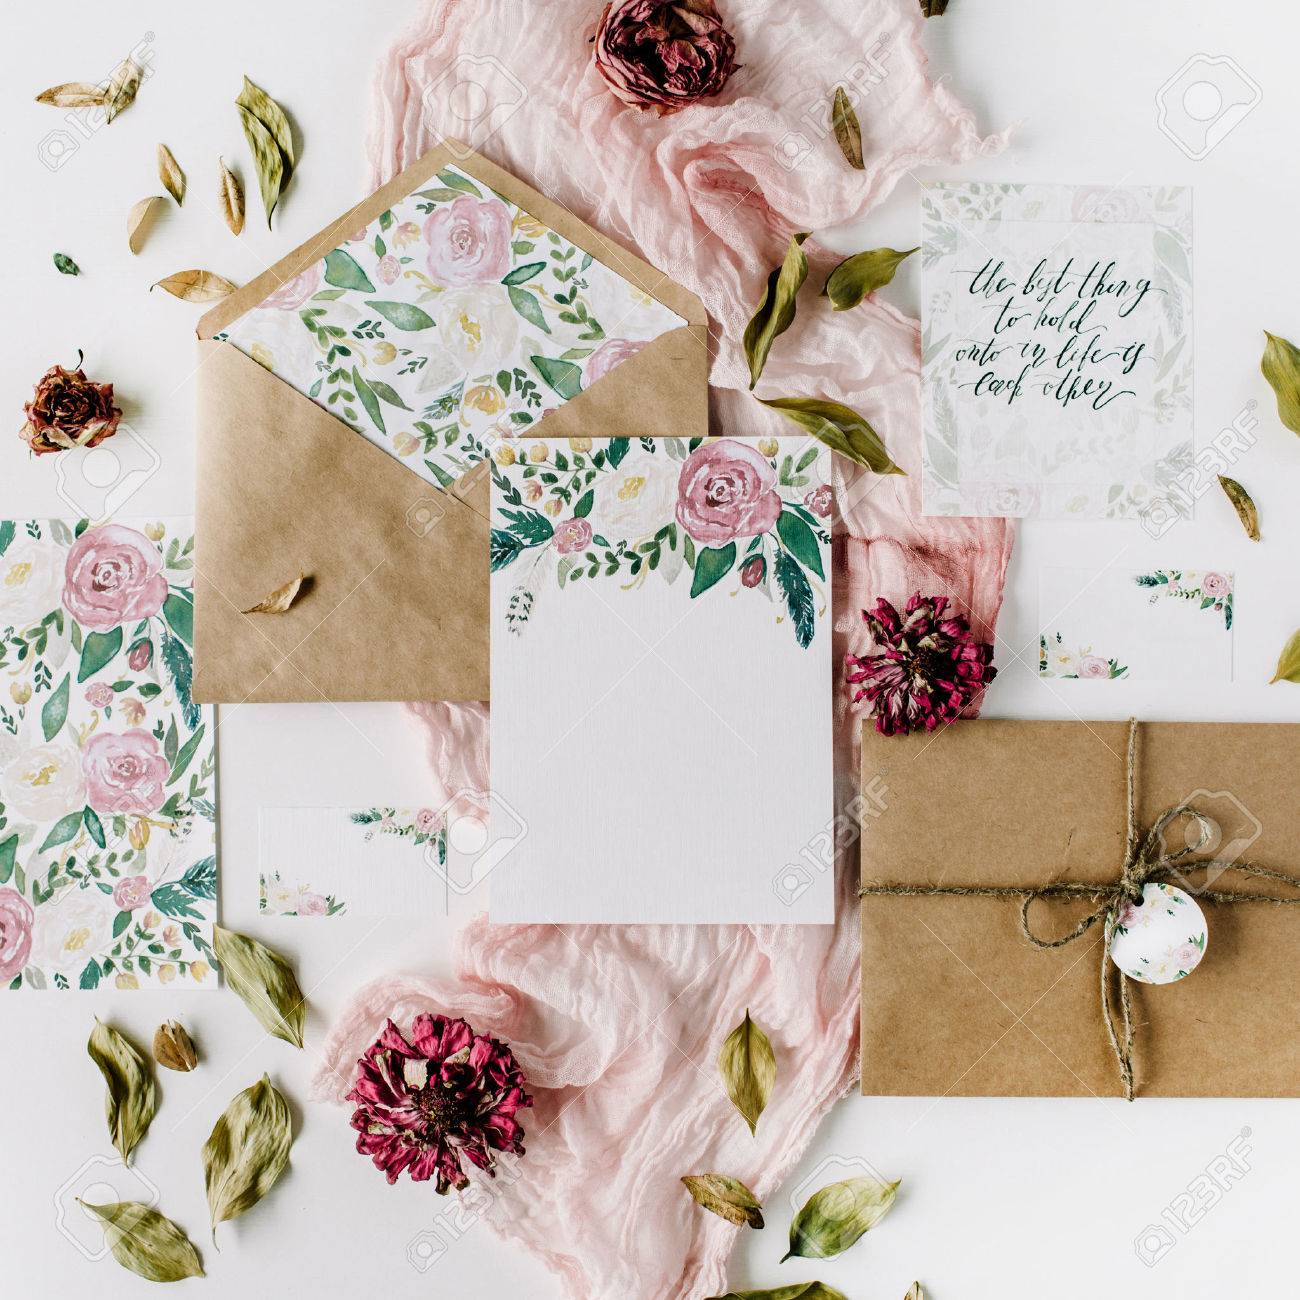 Workspace wedding invitation cards craft envelopes pink and wedding invitation cards craft envelopes pink and red roses and green leaves on white background overhead view flat lay top view stopboris Choice Image